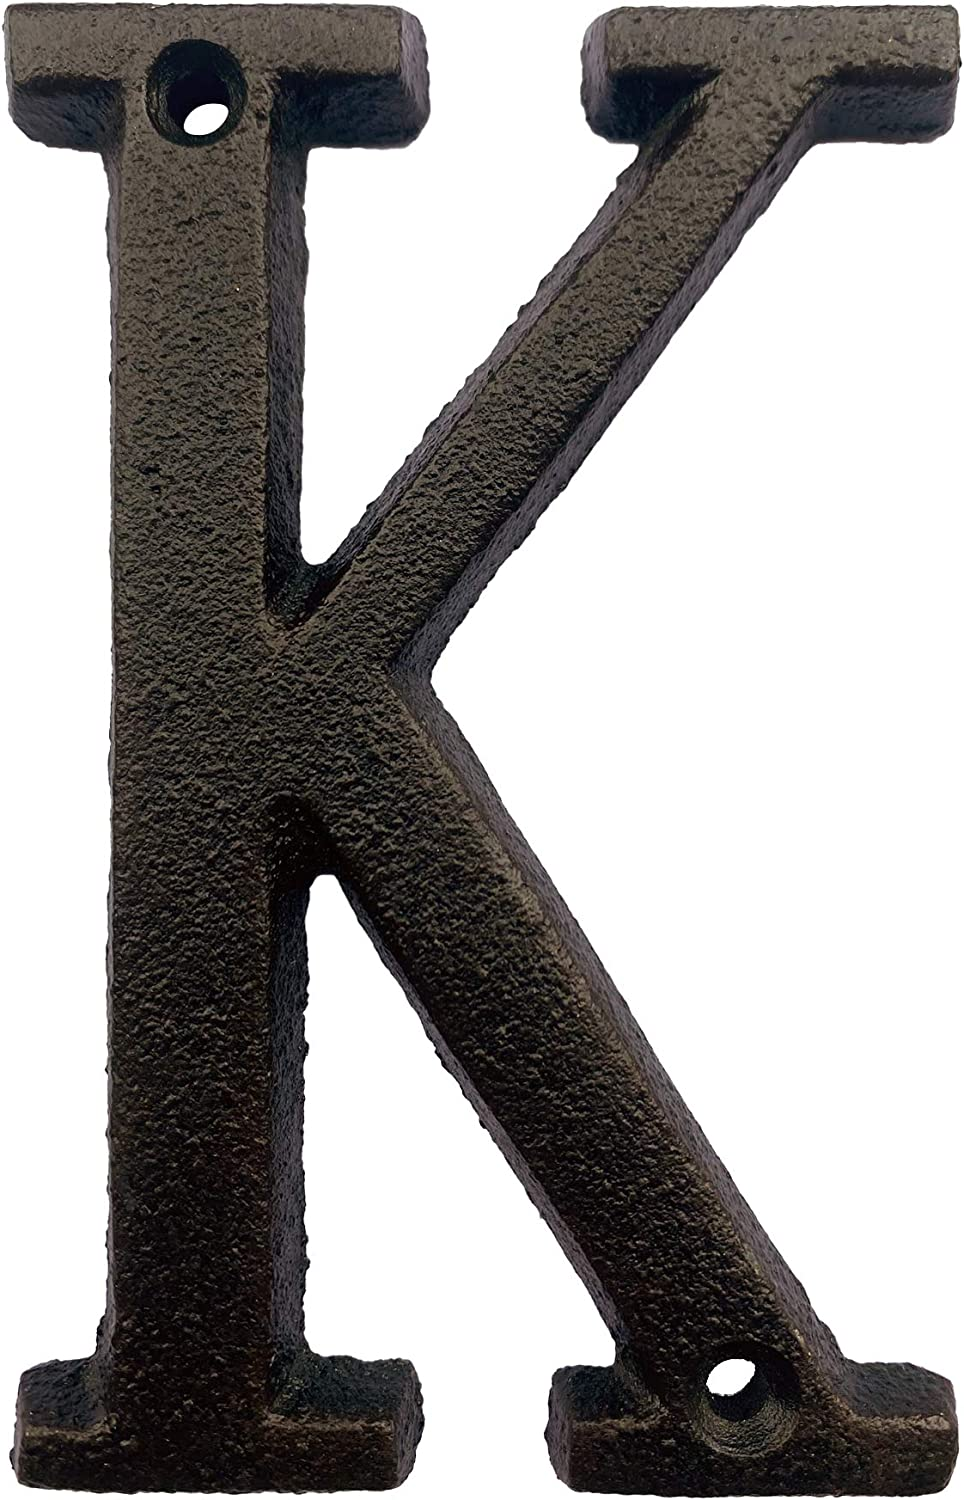 5.1 Inch High Cast Iron House Letter, Solid Home Address Letter, Elegant Black Brown Finished, Matching Perfect with 5.5 Inch House Numbers, Letter K